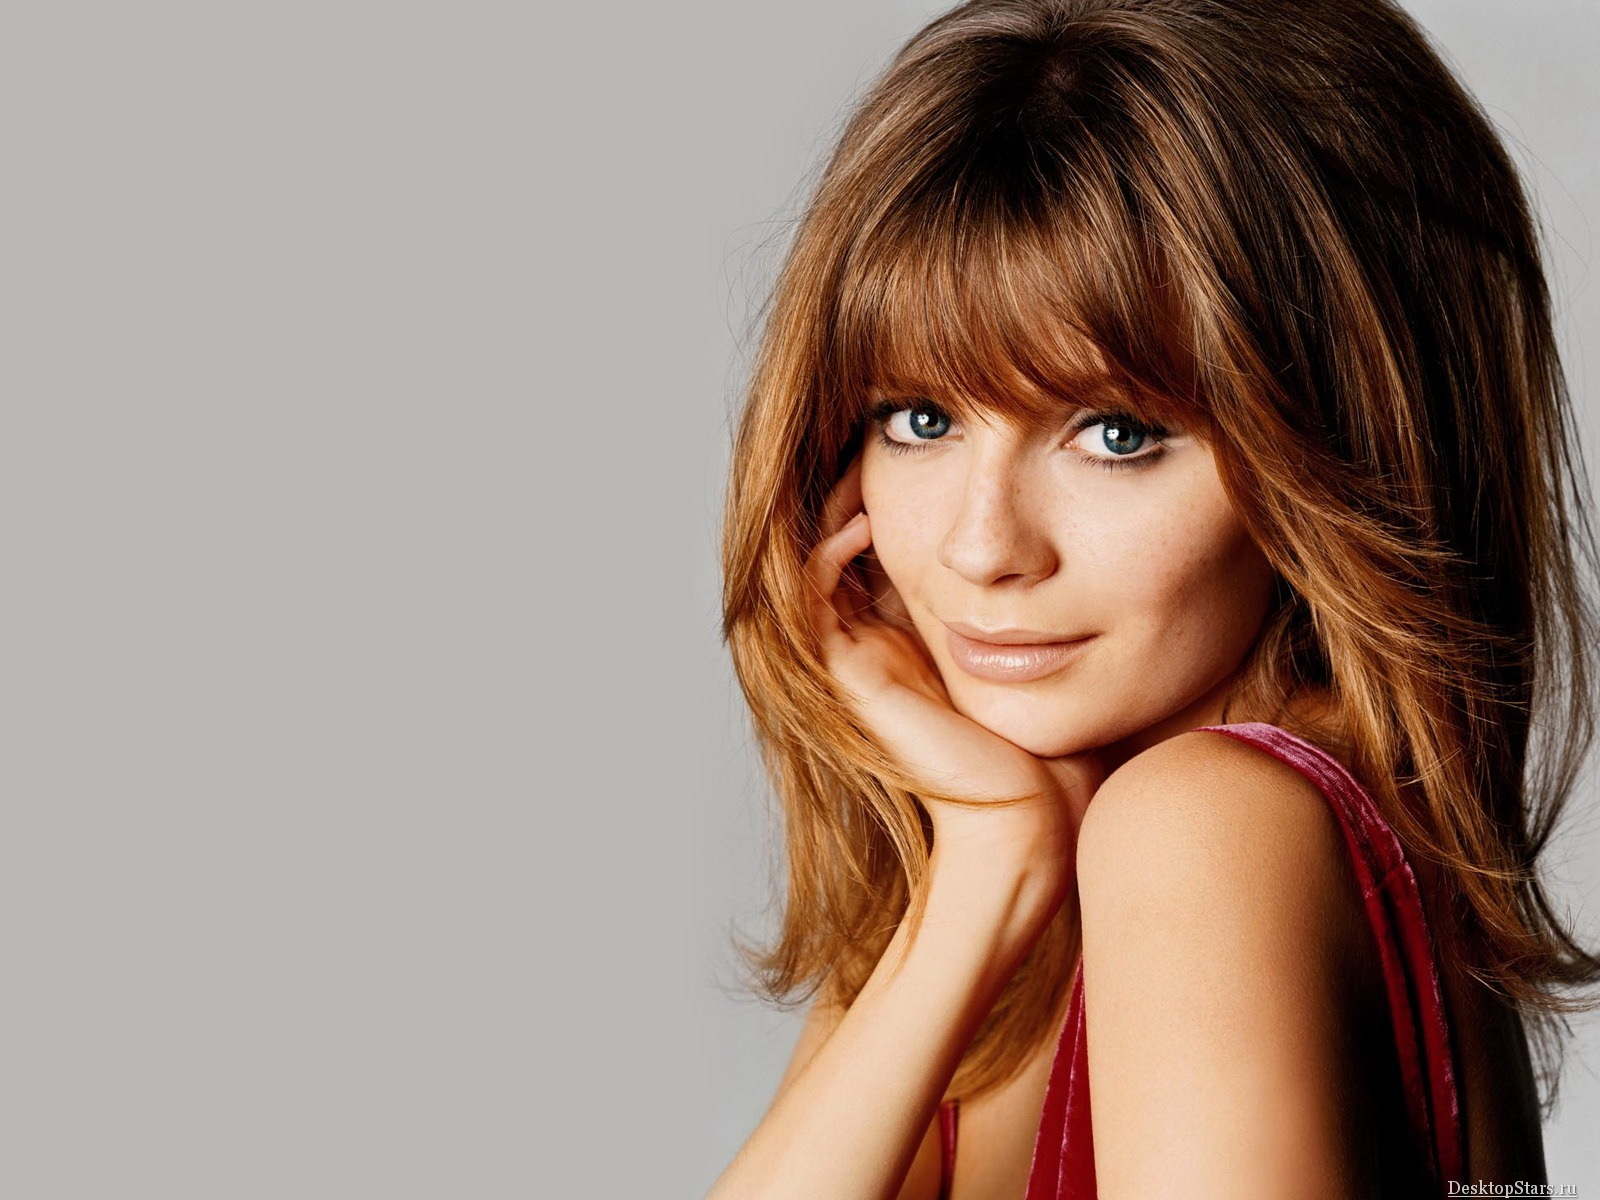 Mischa Barton #067 - 1600x1200 Wallpapers Pictures Photos Images